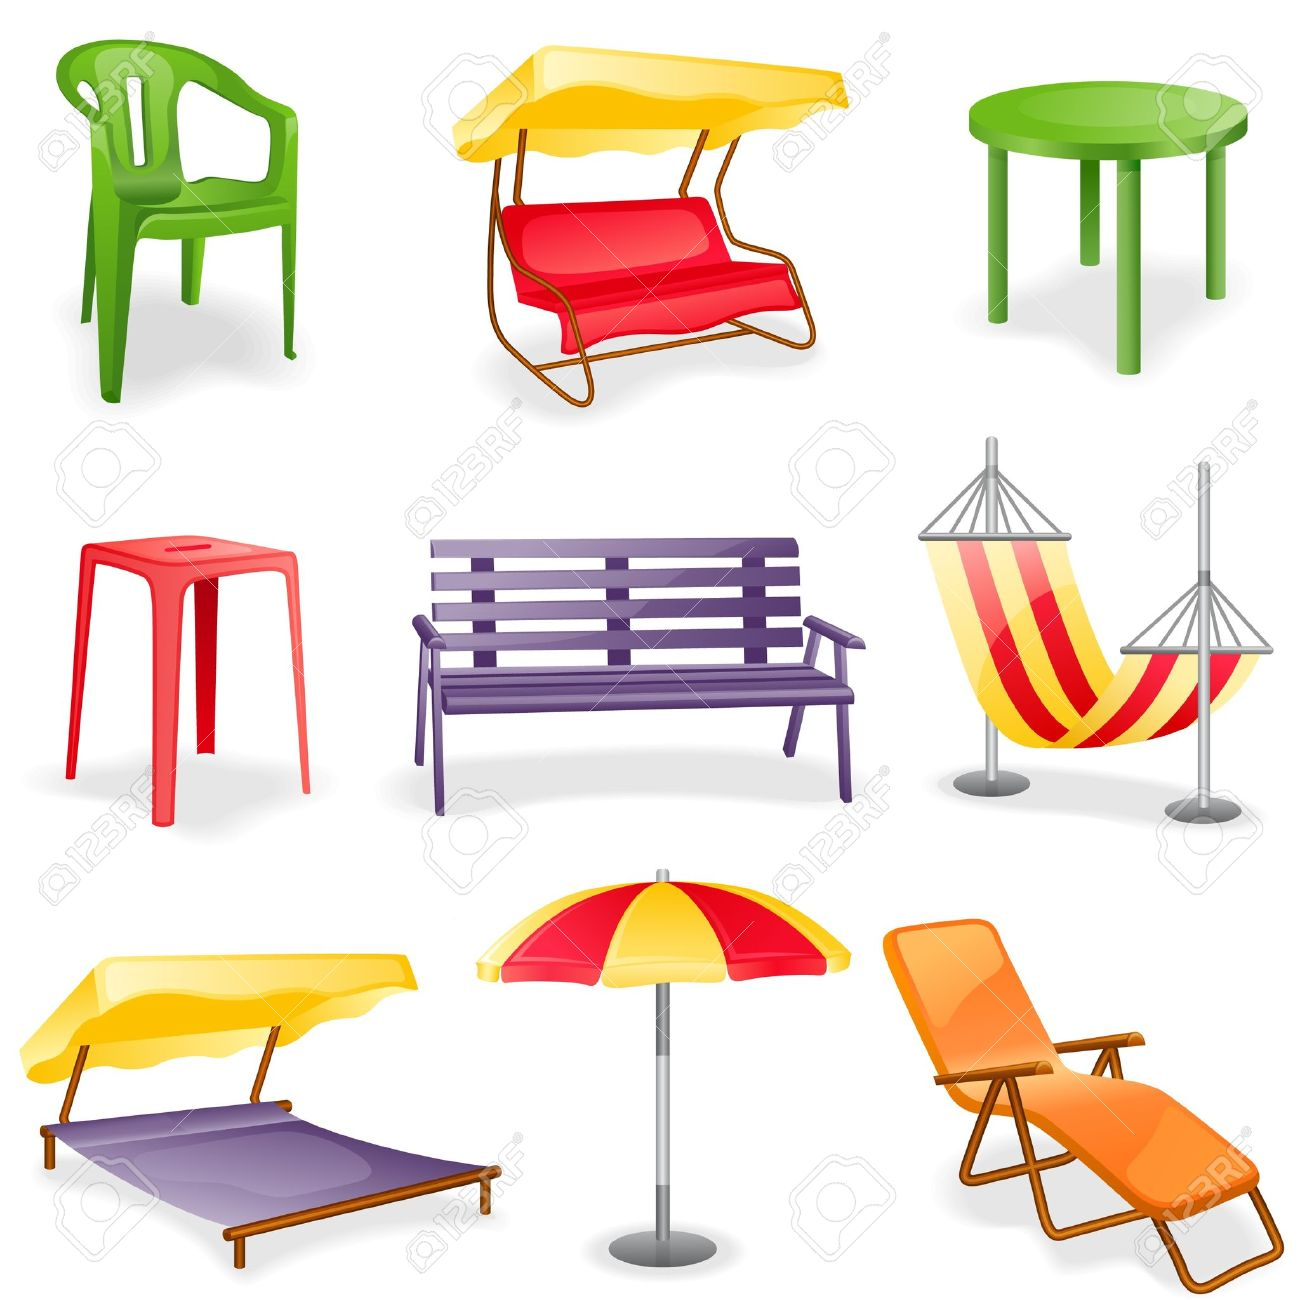 Garden furniture icon set.  Isolated on a white background. Stock Vector - 9607320